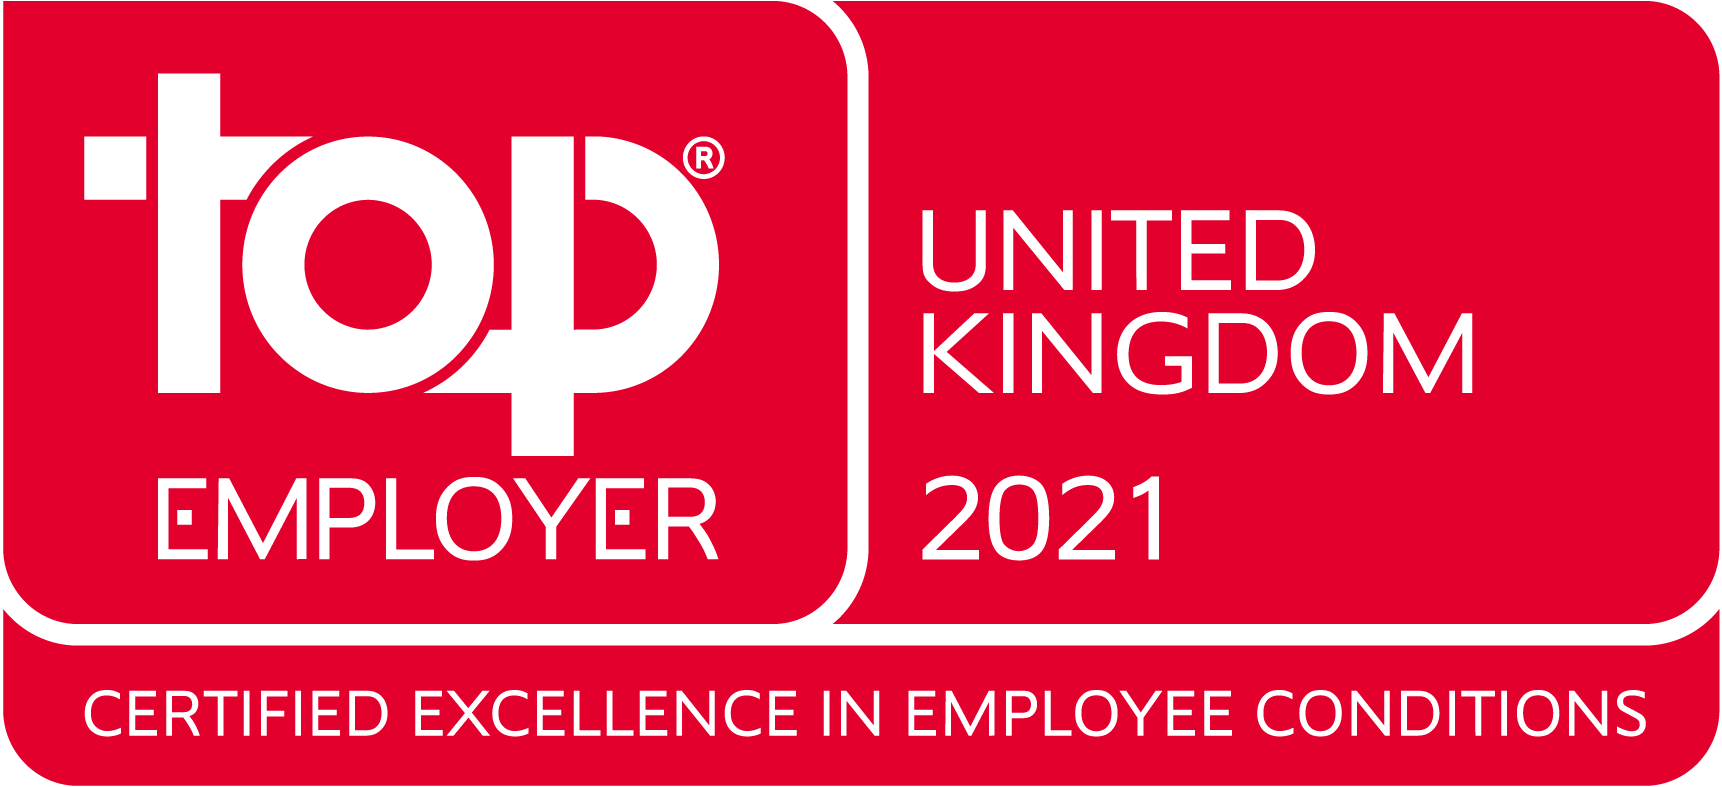 Top Employer 2021 United Kingdom